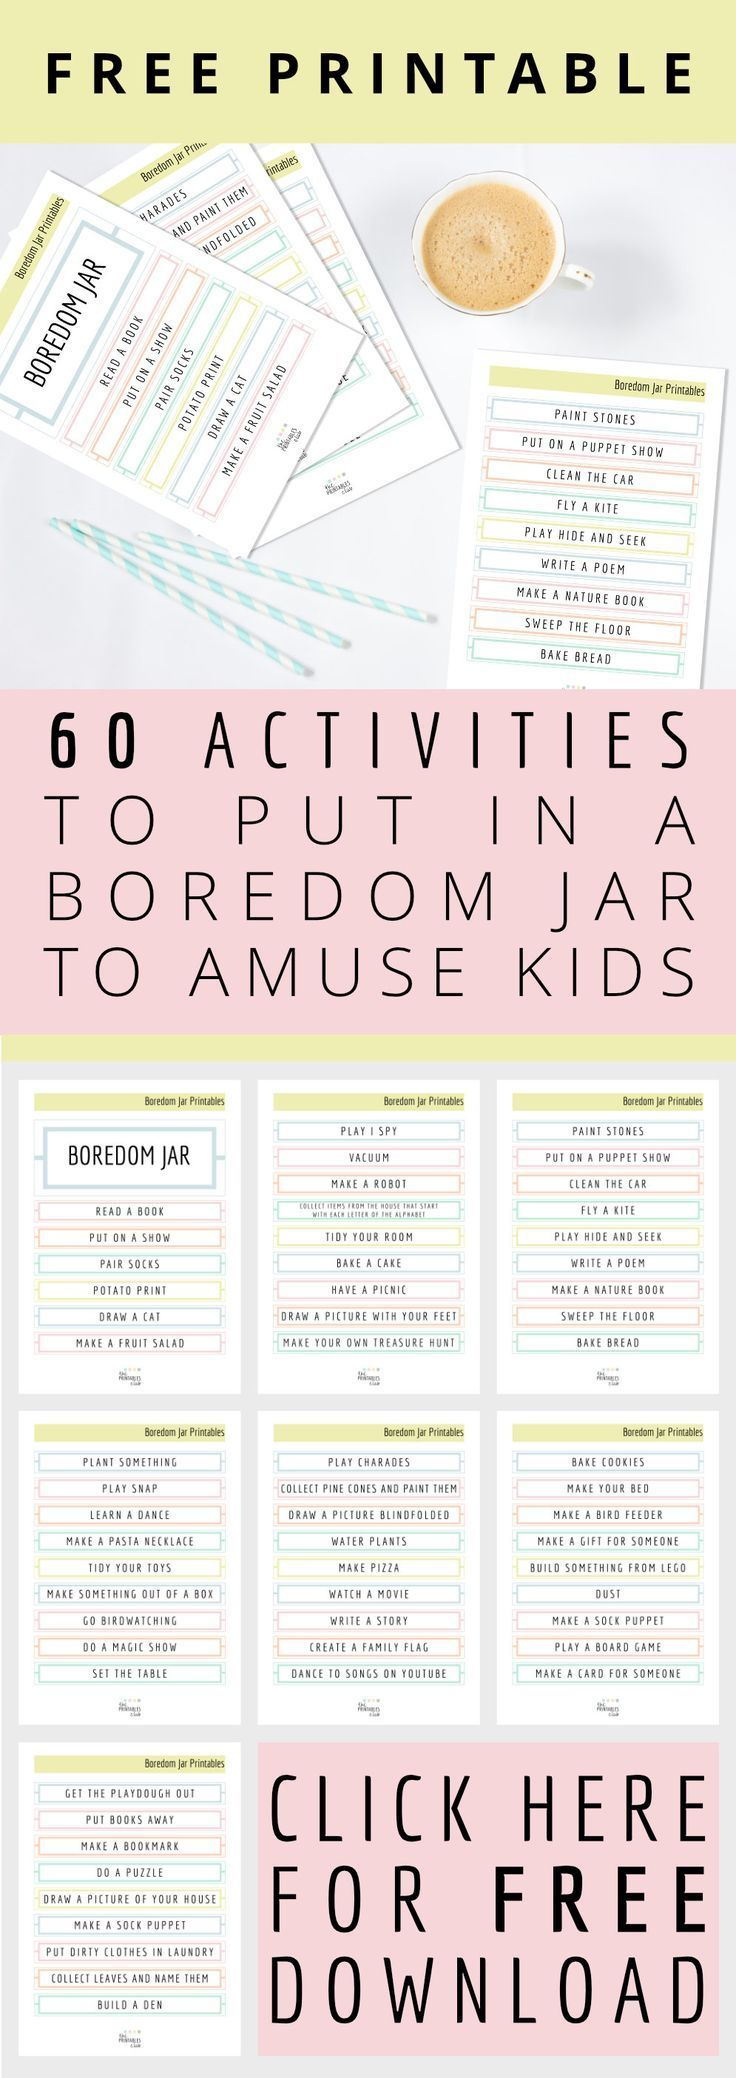 47 Best Free Printables Images On Pinterest Free